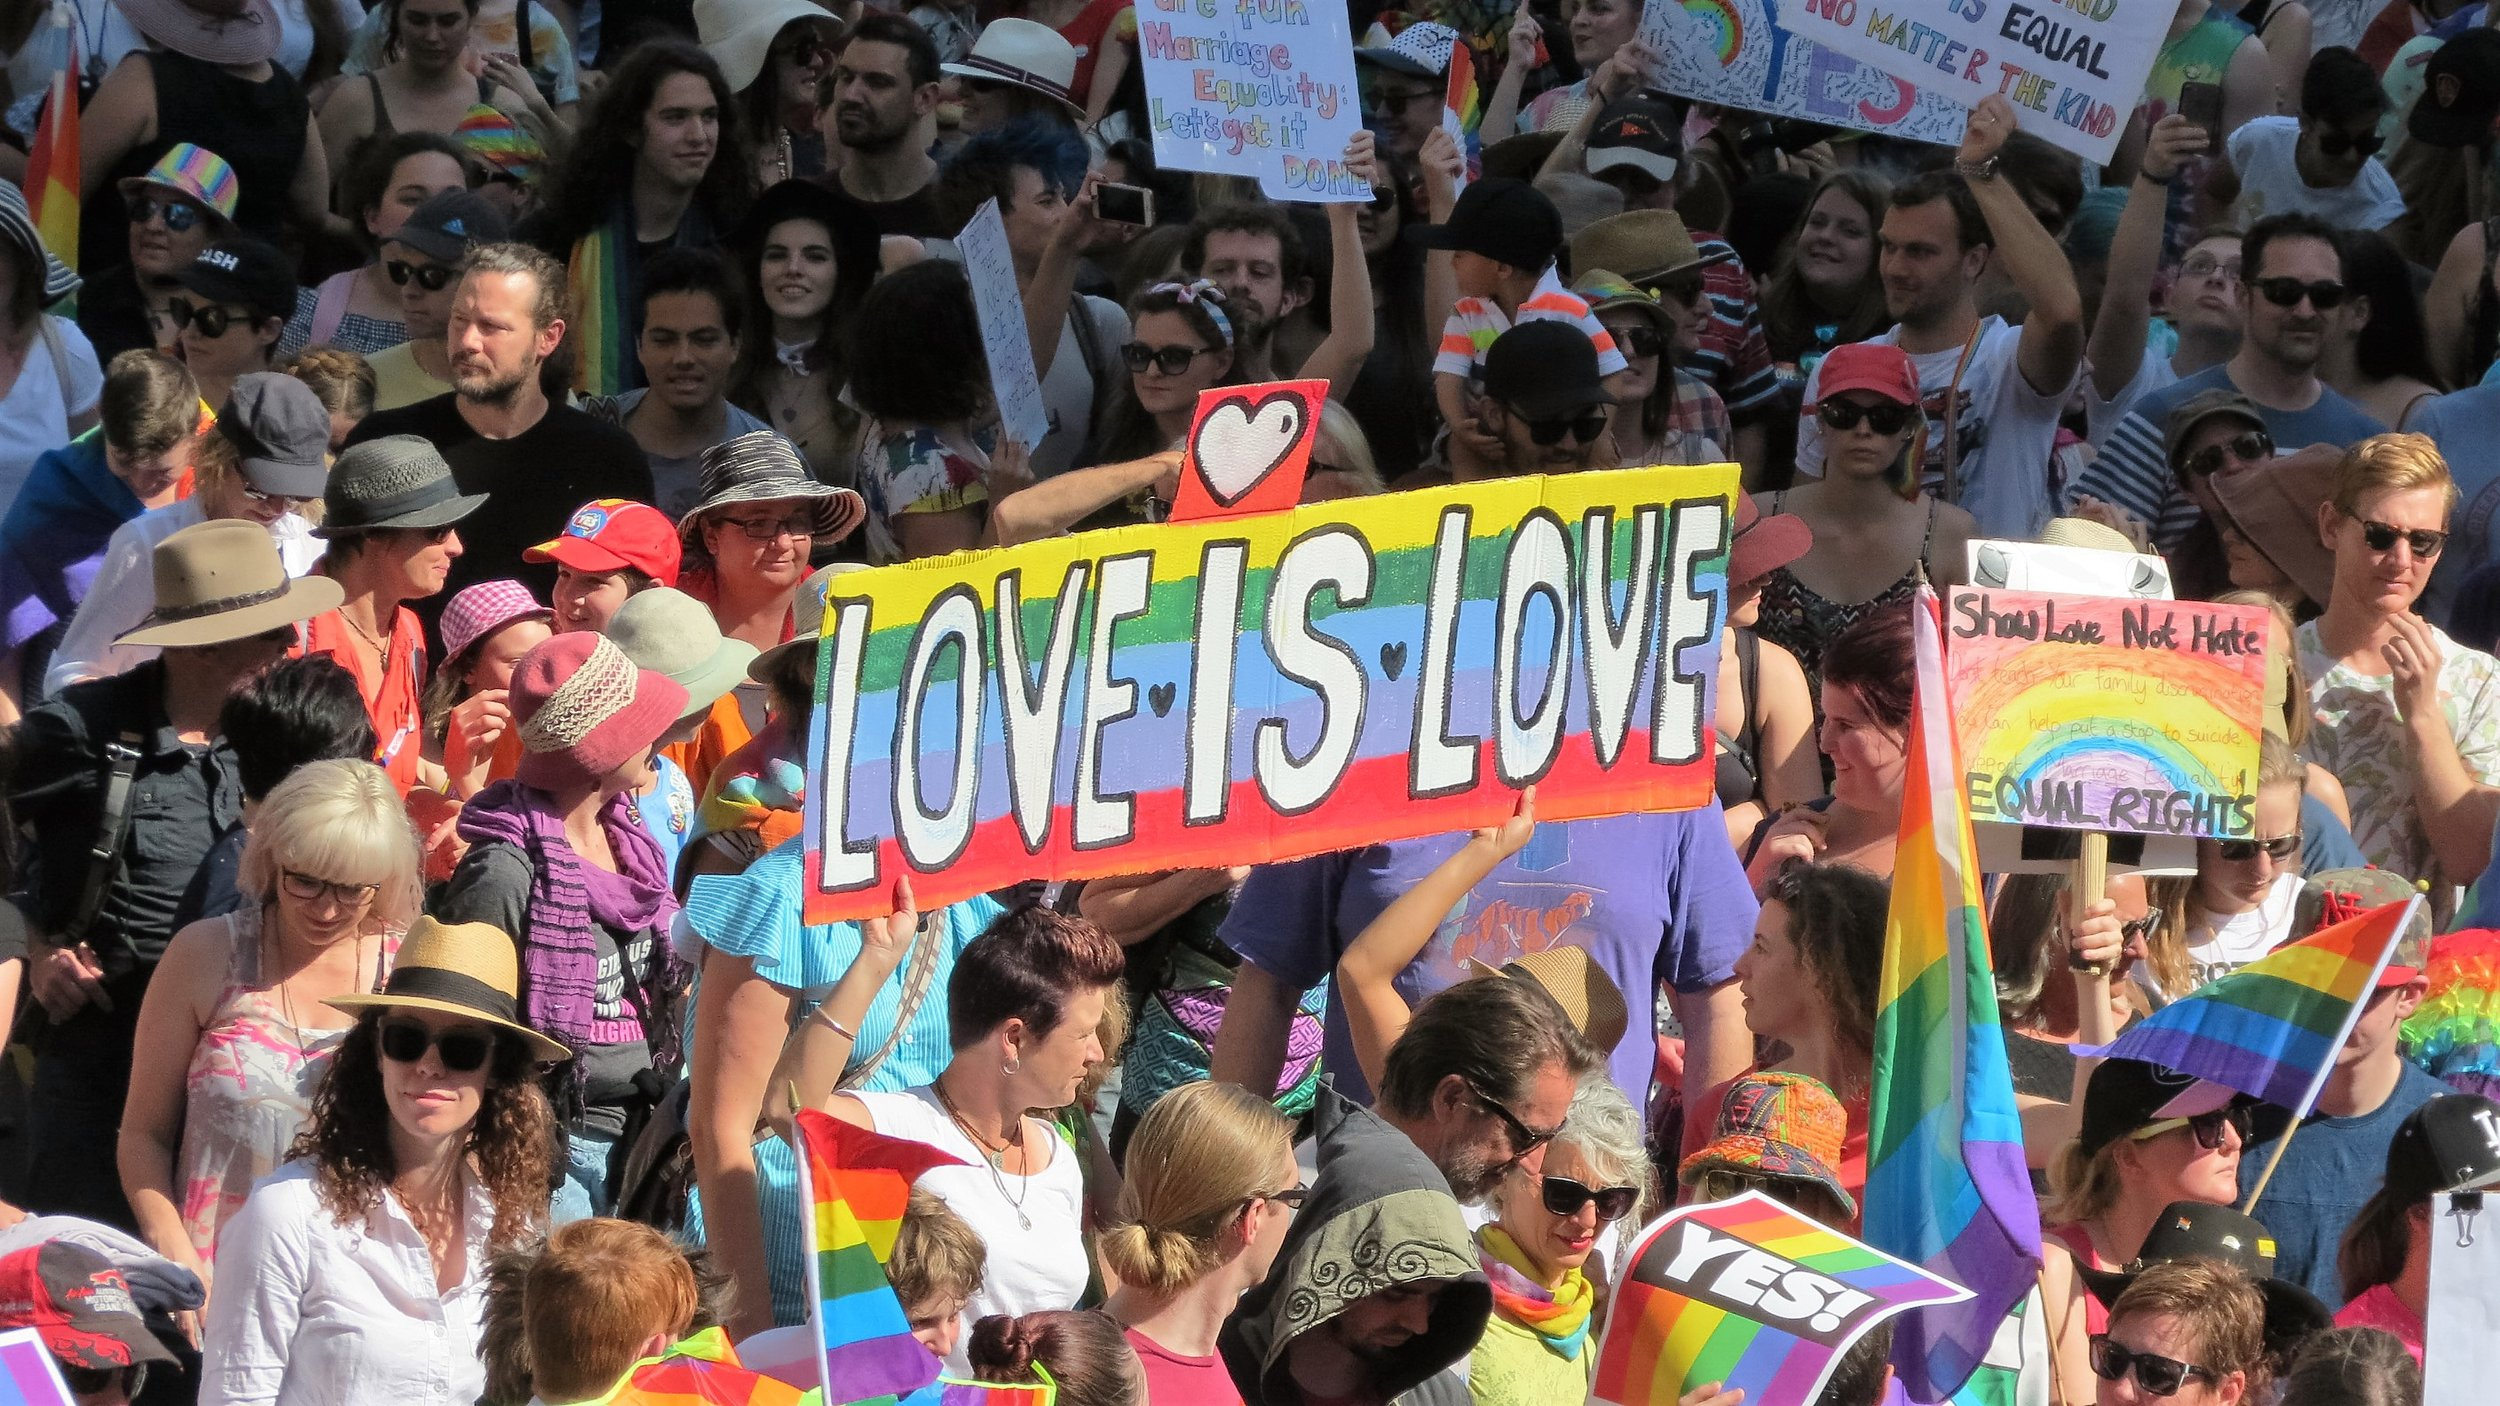 March for Marriage Equality This Saturday in Seattle